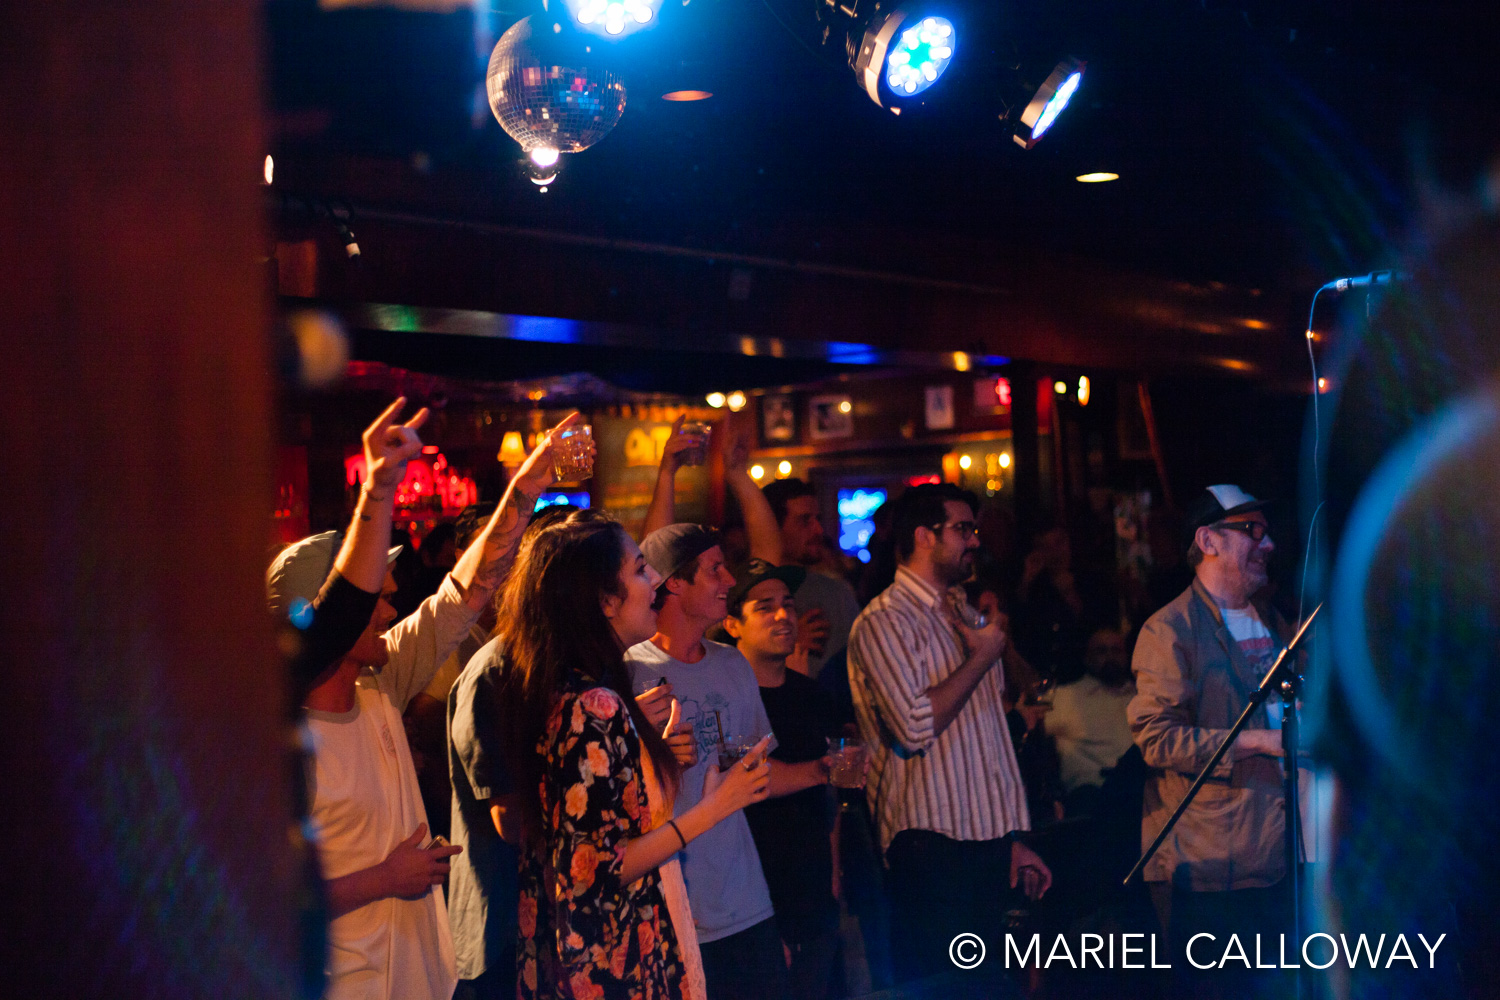 Los-Angeles-Concert-Photography-Small-sRGB-15.jpg